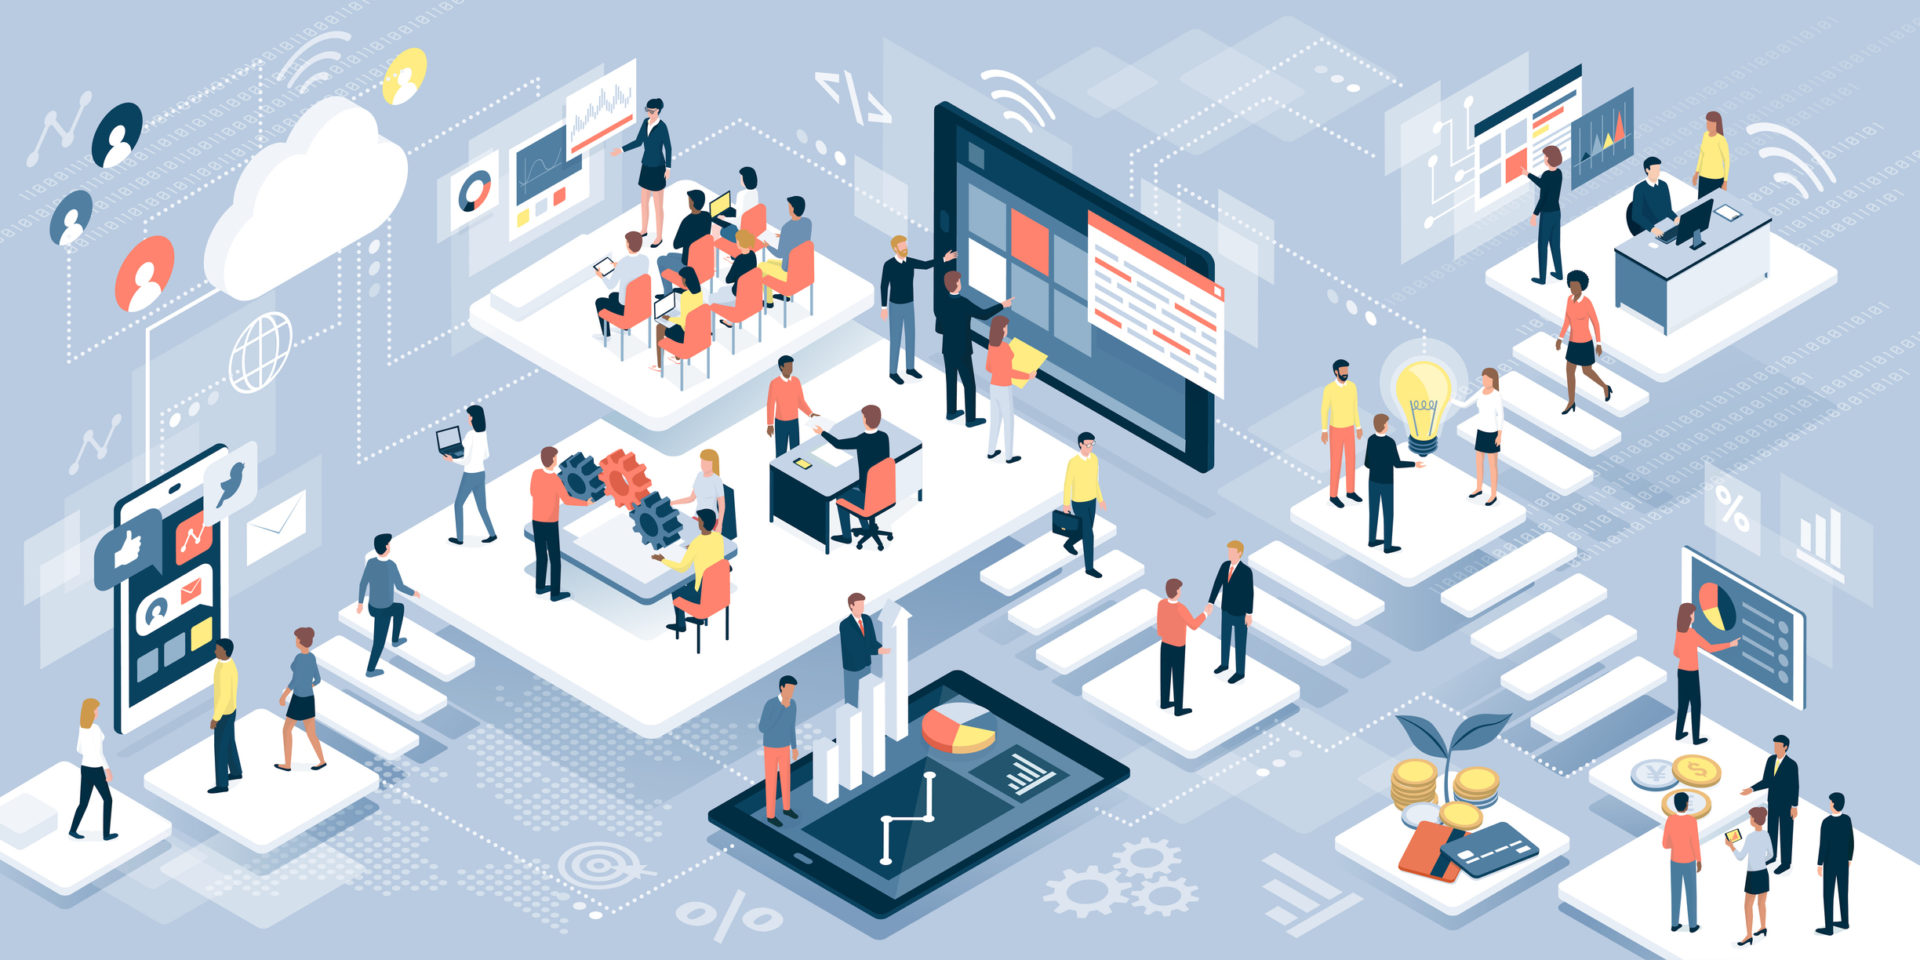 How to build a digital strategy?